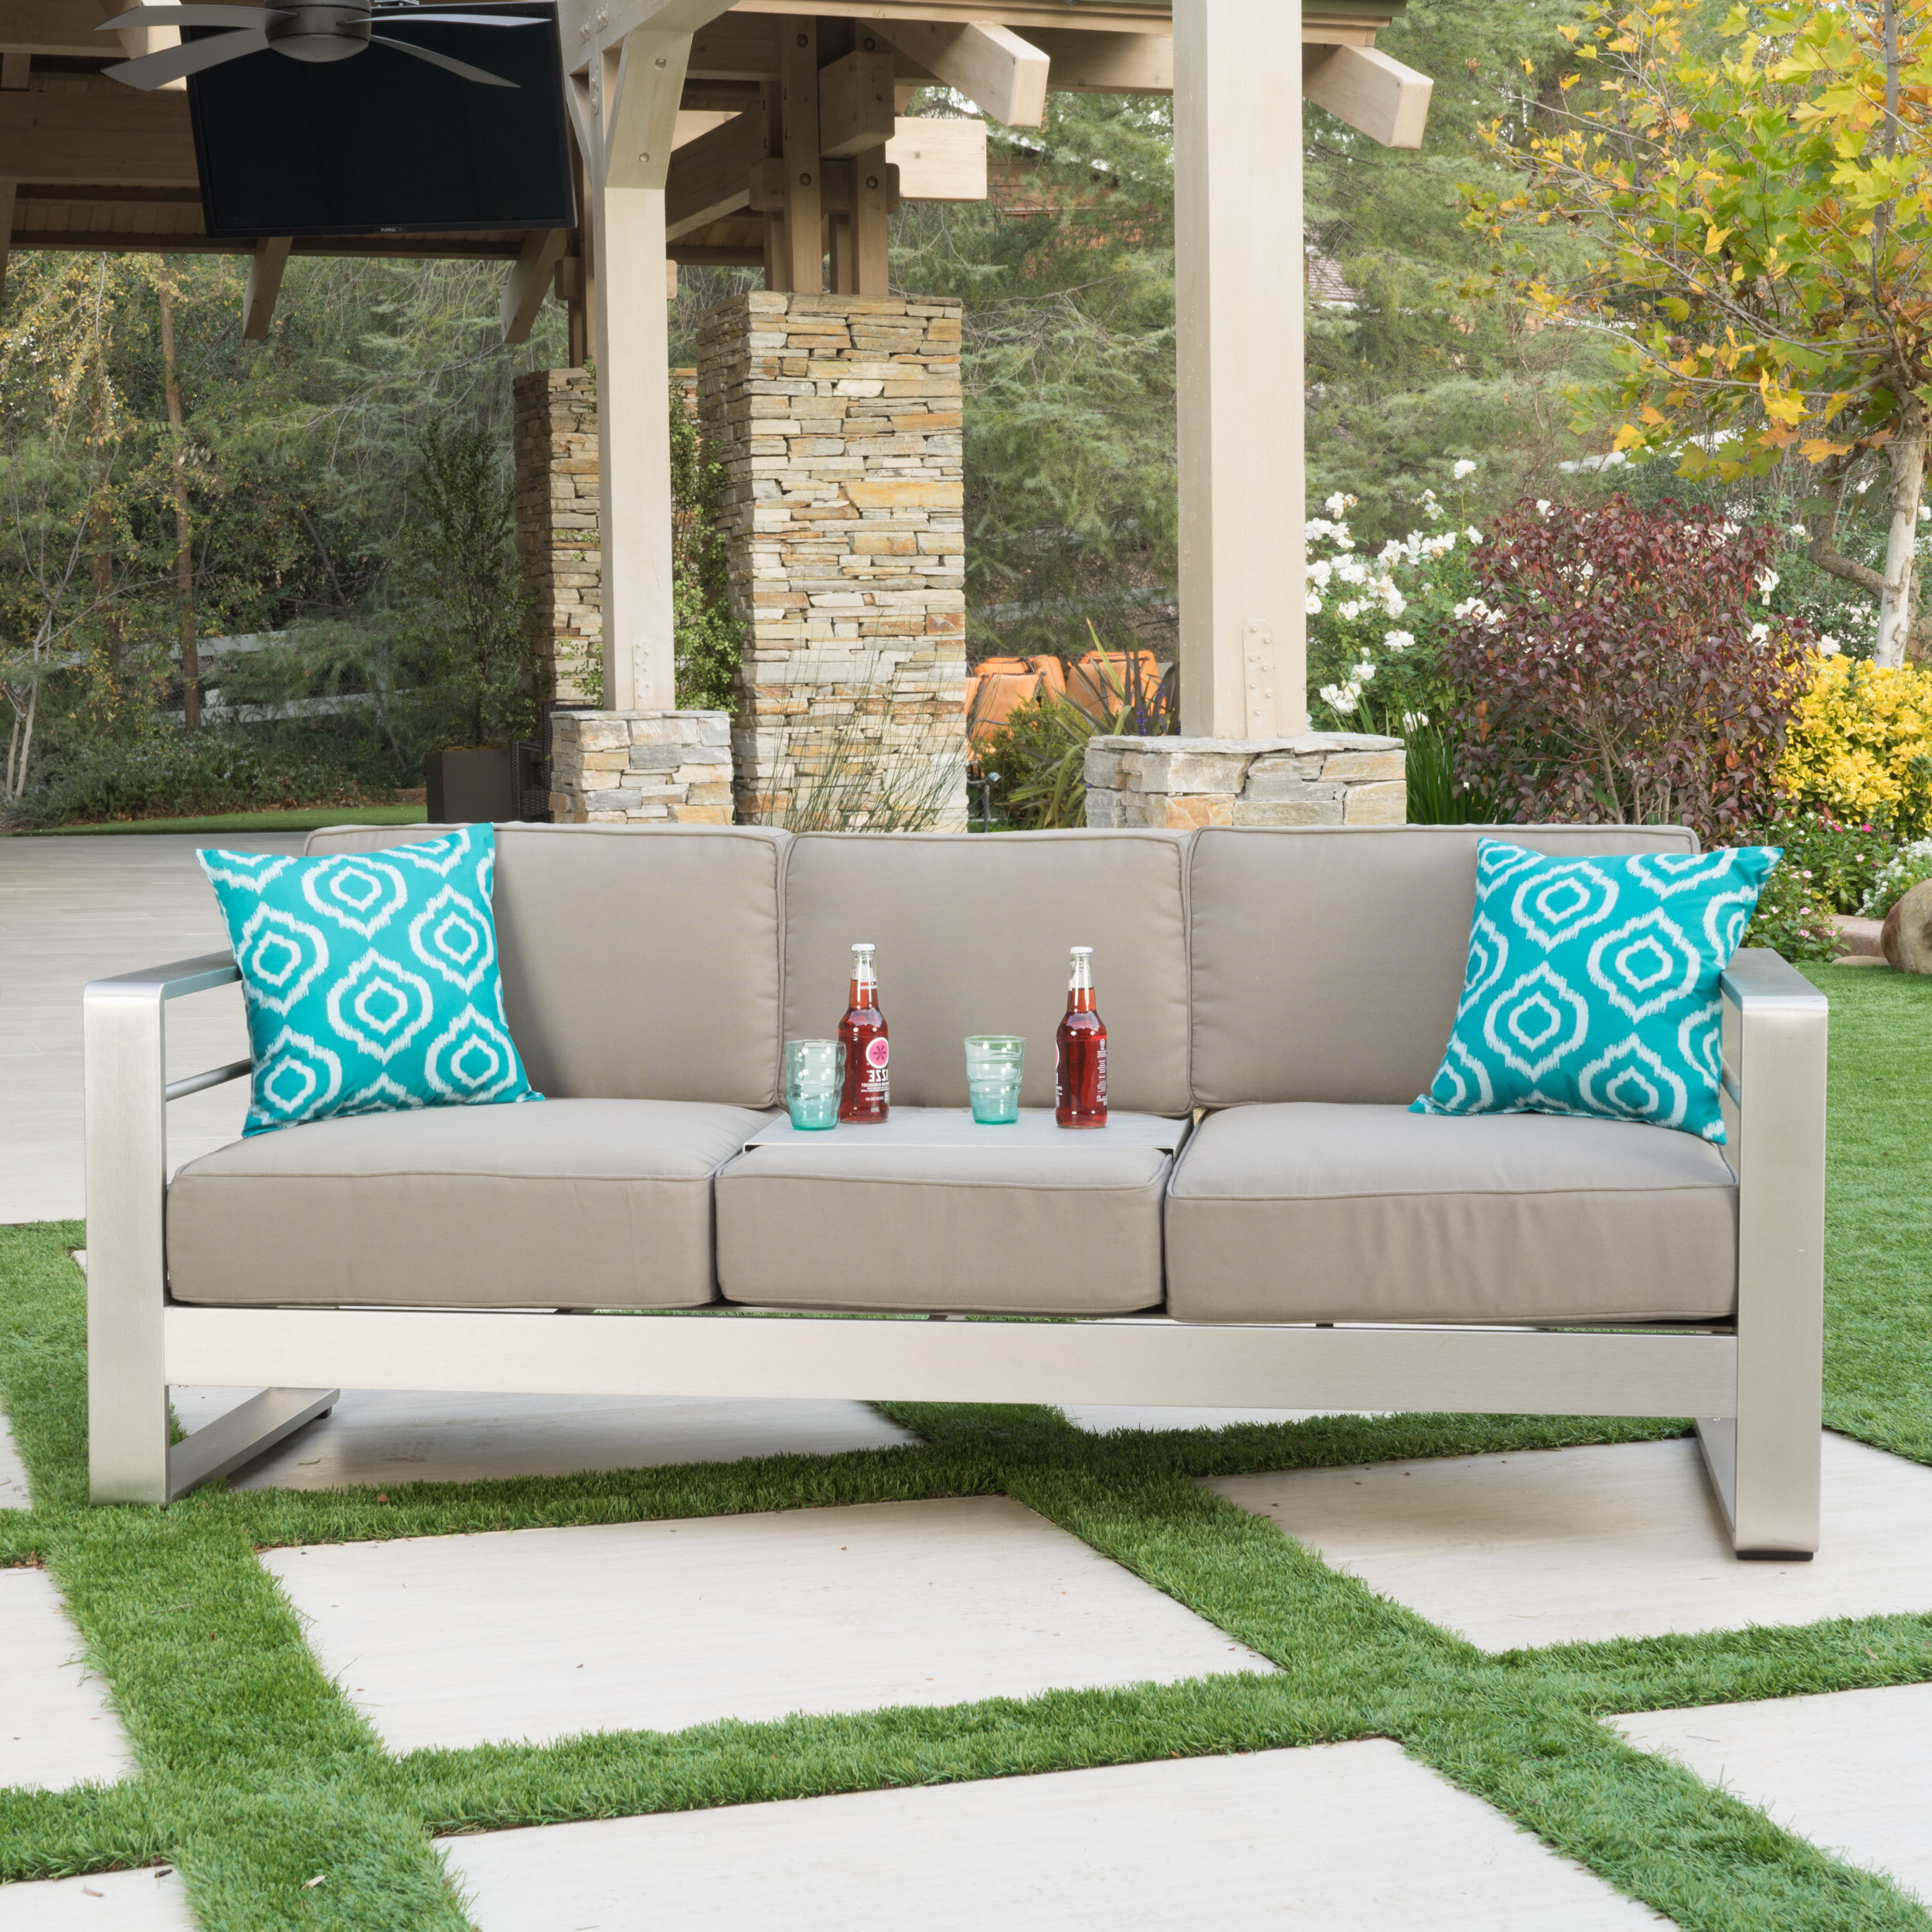 Best And Newest Menifee Patio Sofas With Cushions Intended For Royalston Patio Sofa With Cushions (View 23 of 25)